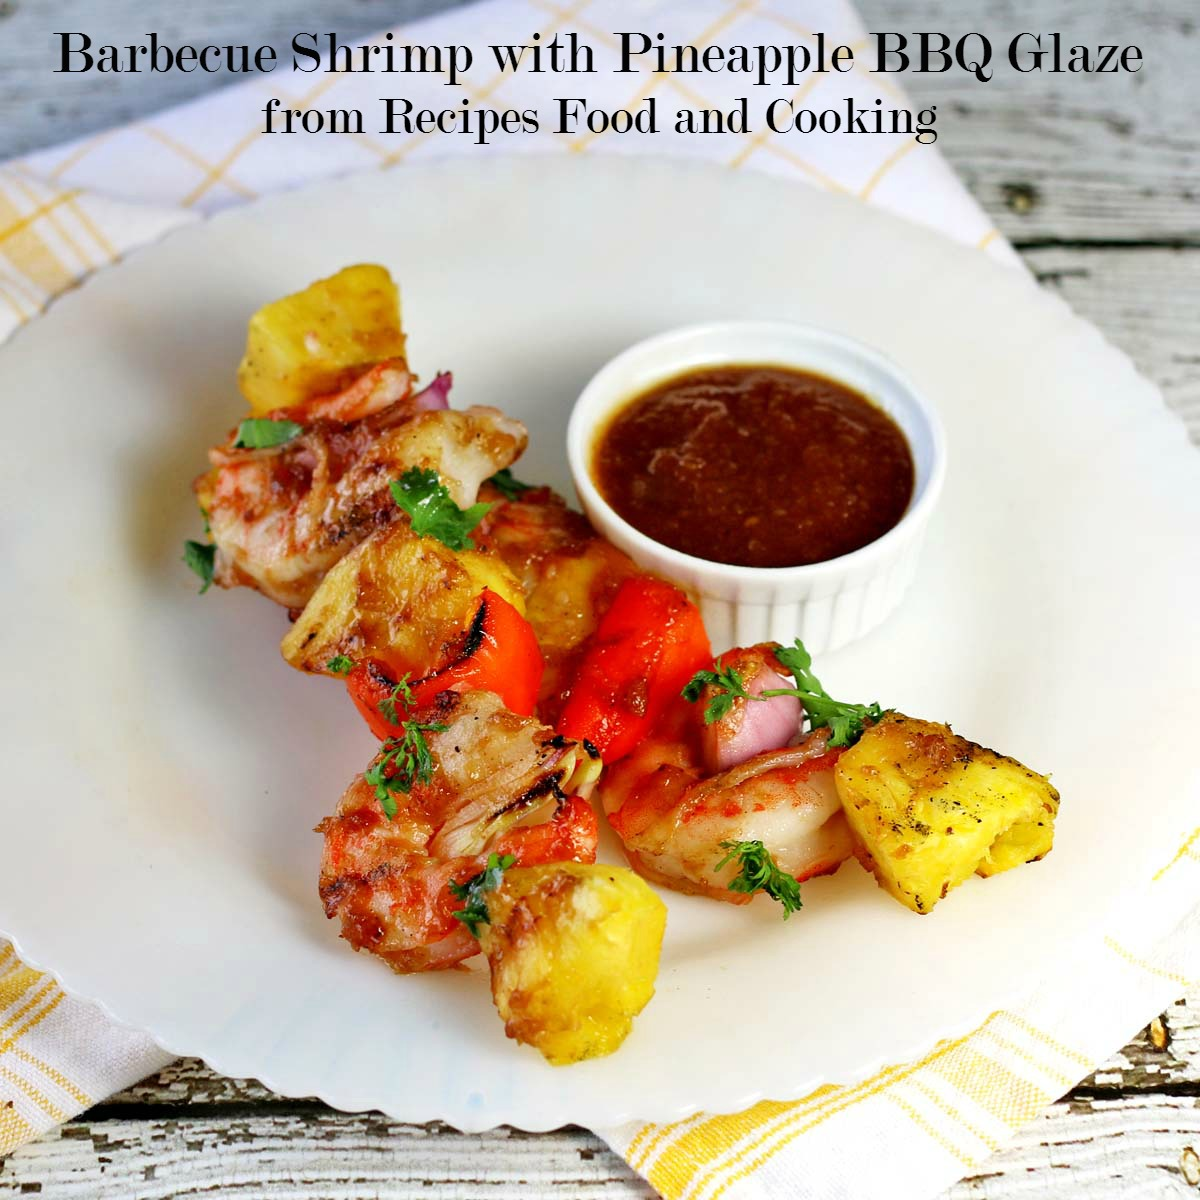 Barbecue Shrimp with Pineapple BBQ Glaze